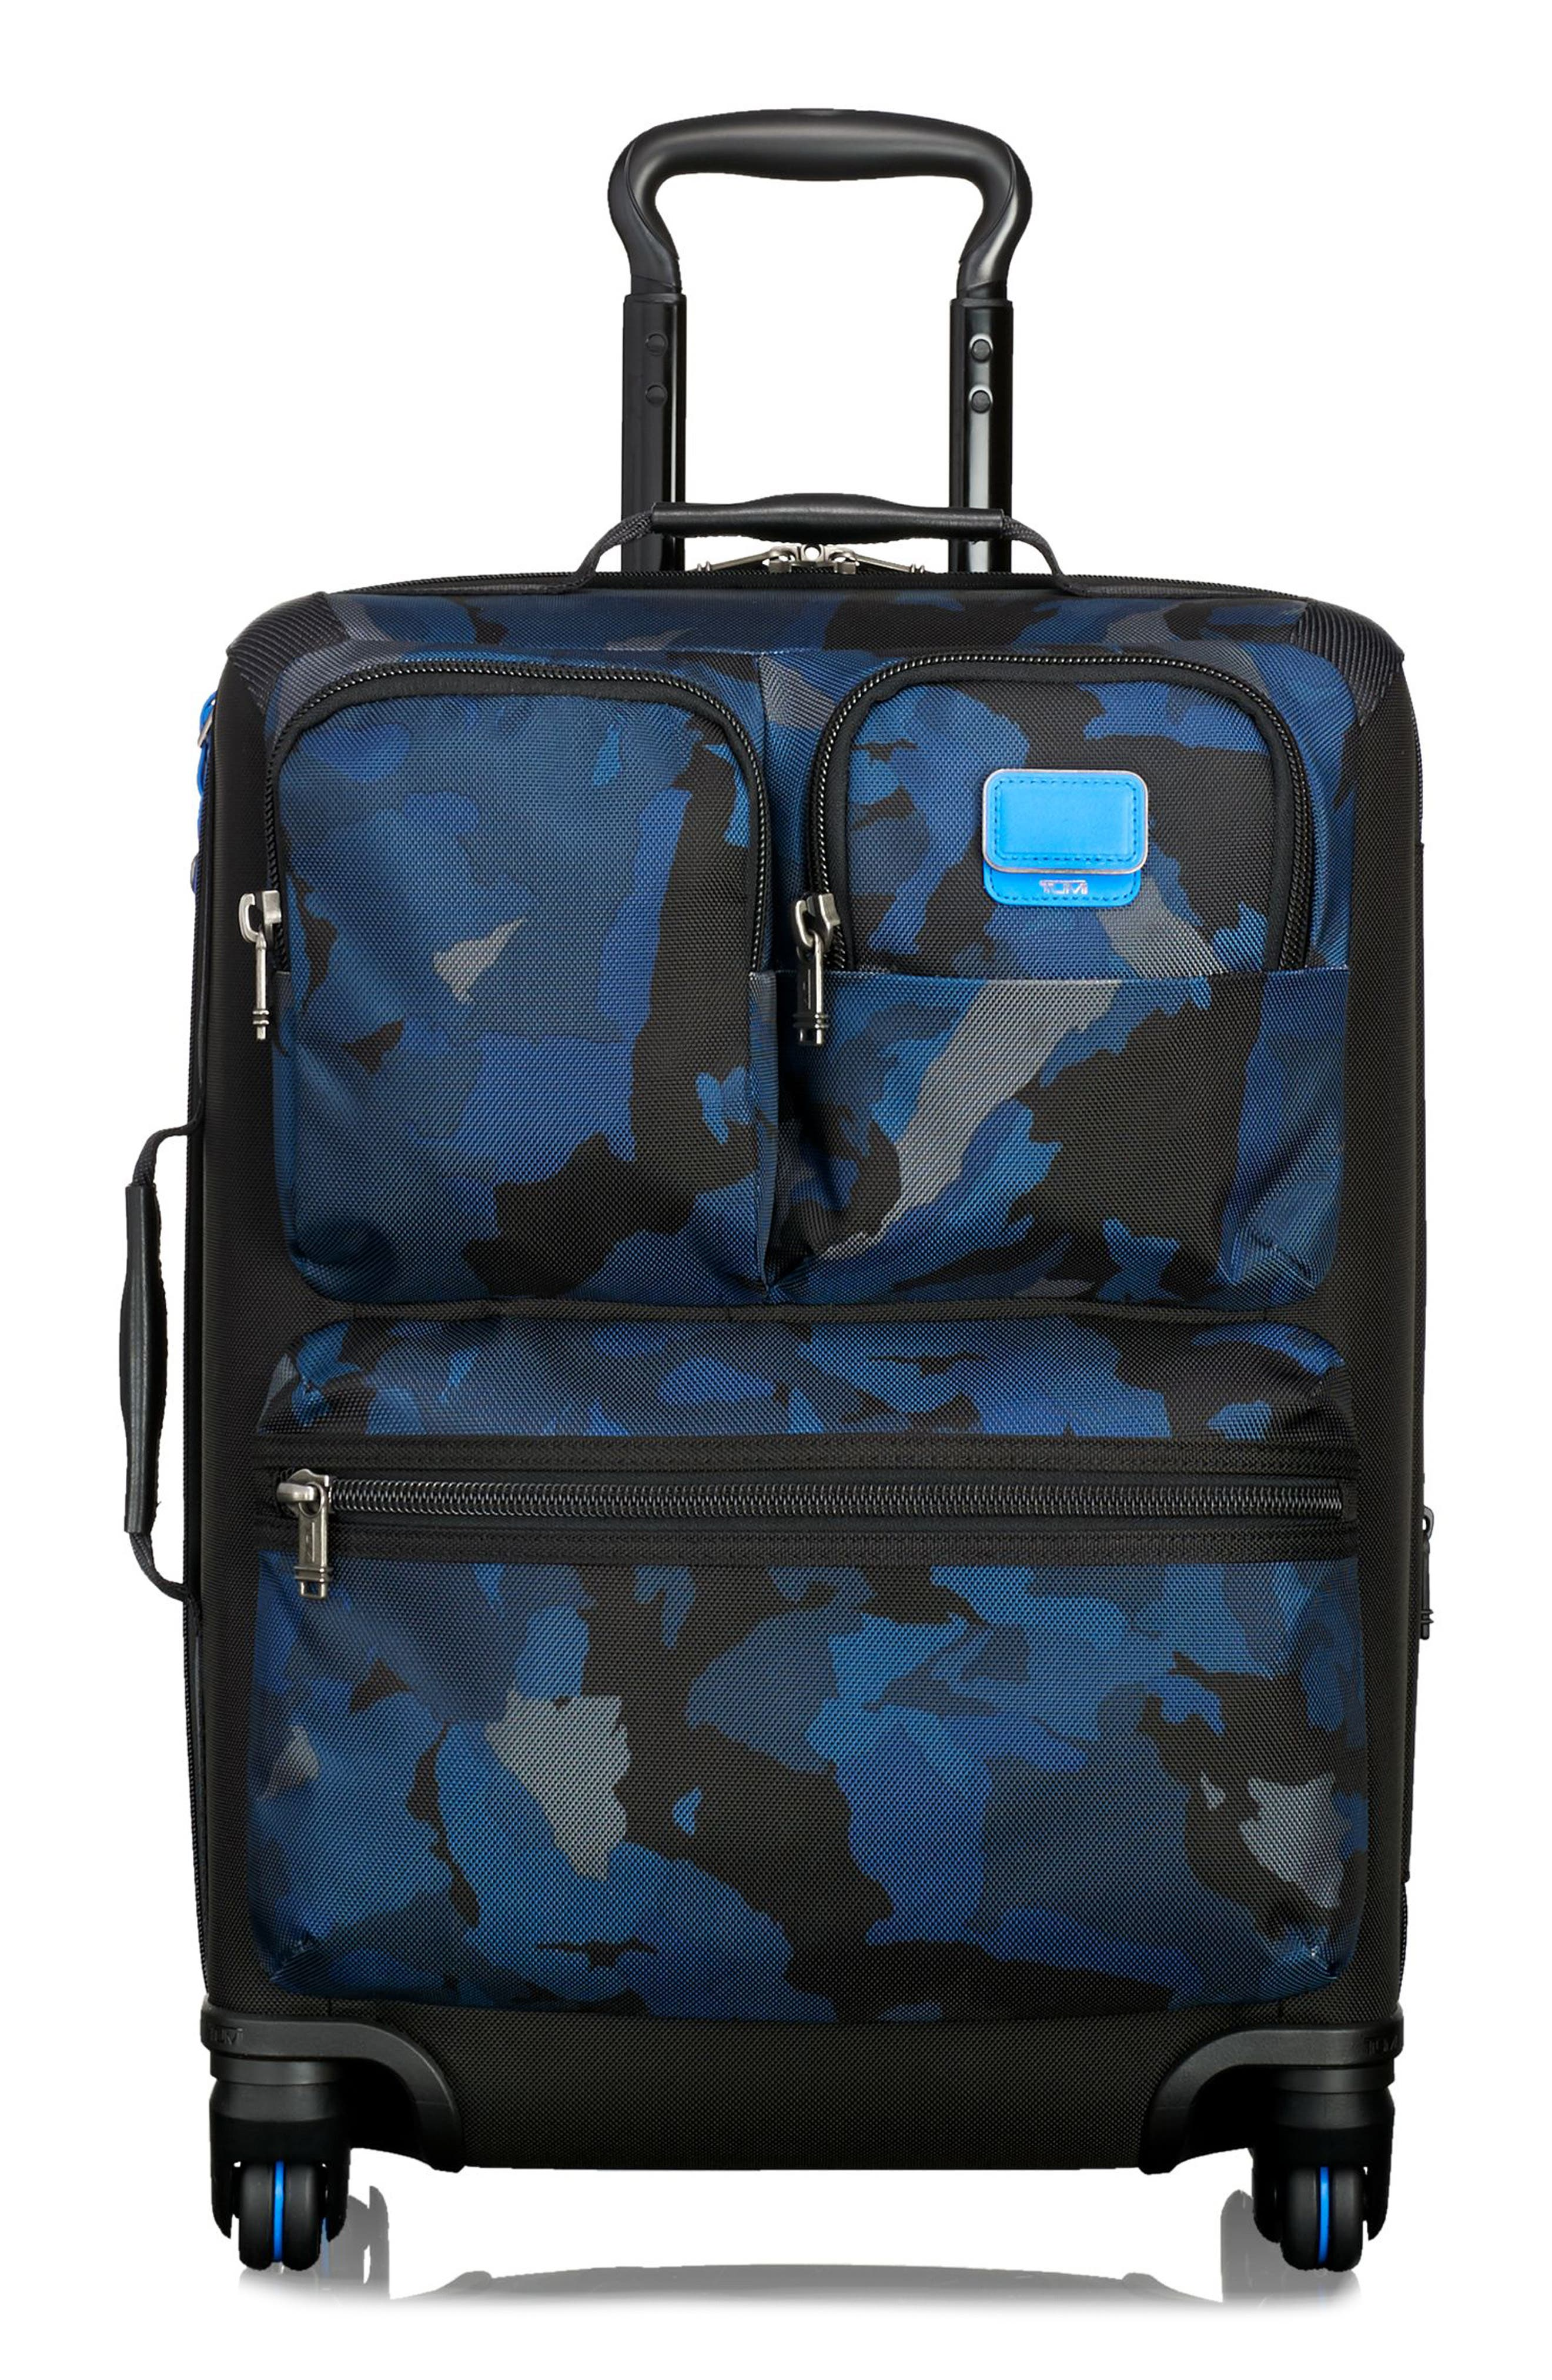 Tumi Alpha Bravo Kirtland 22 Inch Continental Wheeled Carry-On